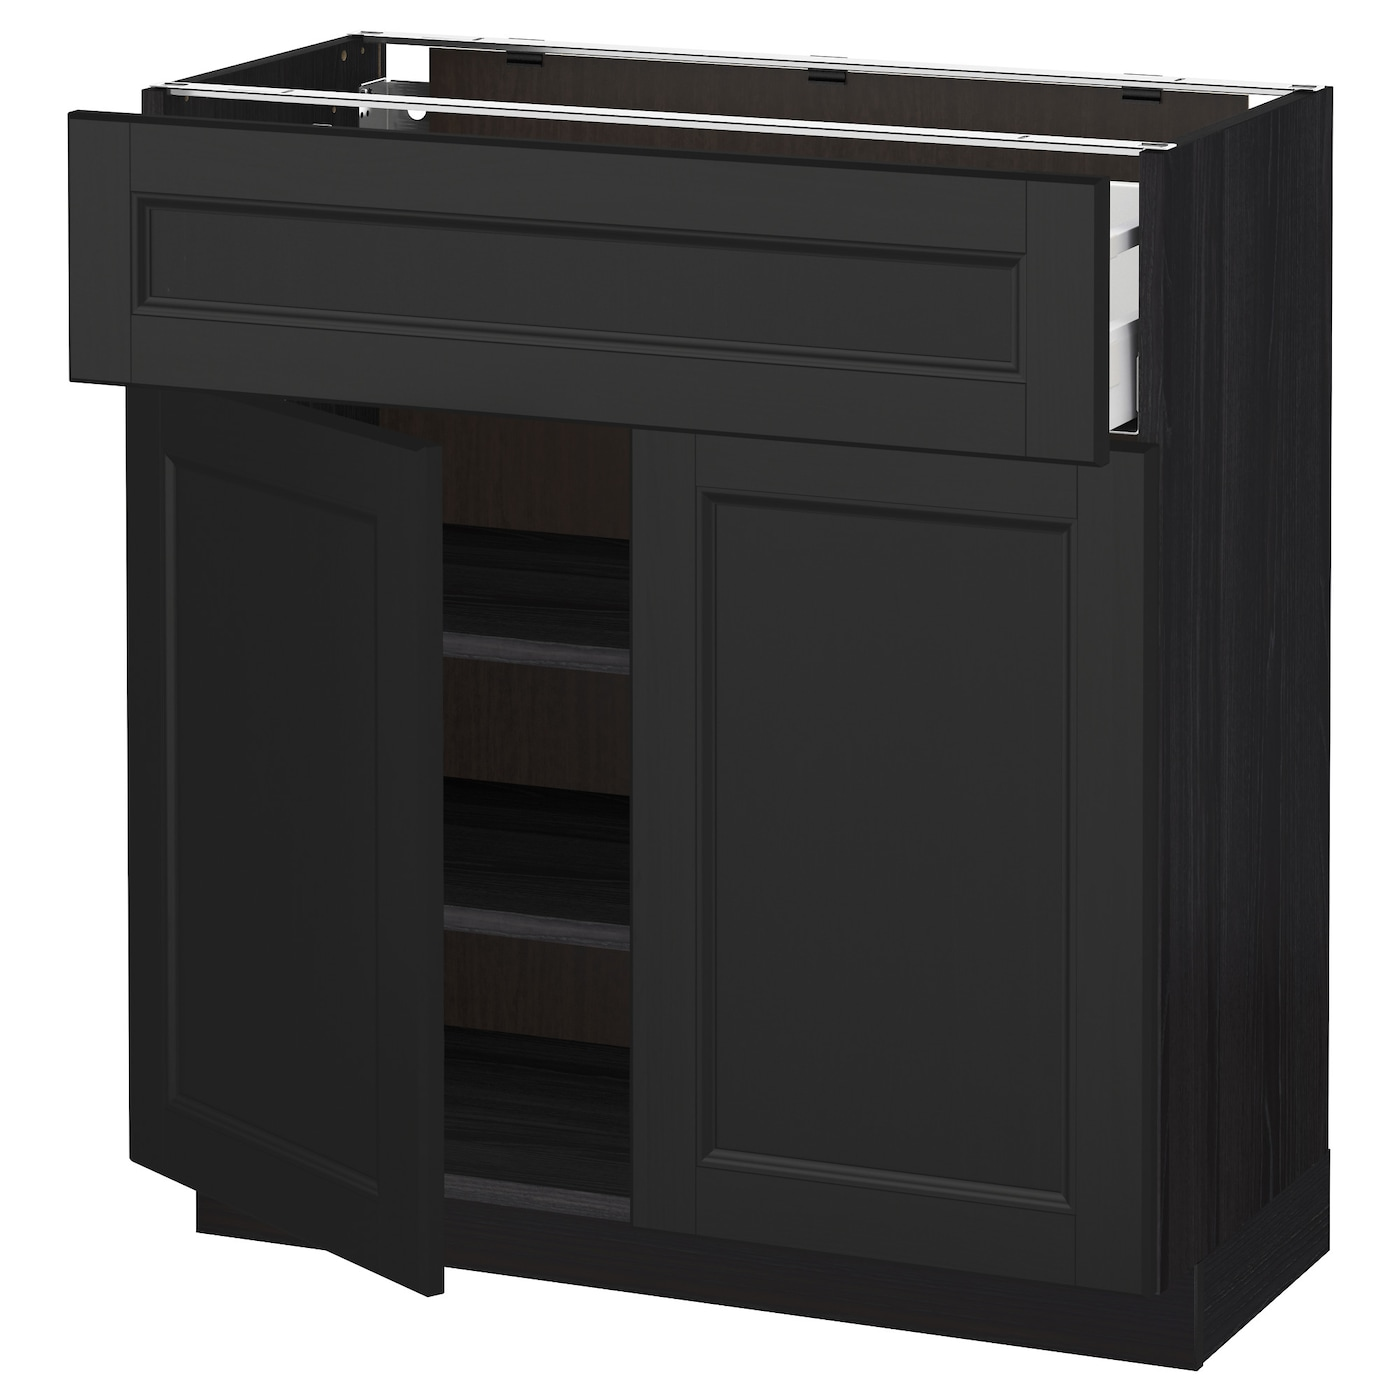 Metod Maximera Base Cabinet With Drawer 2 Doors Black